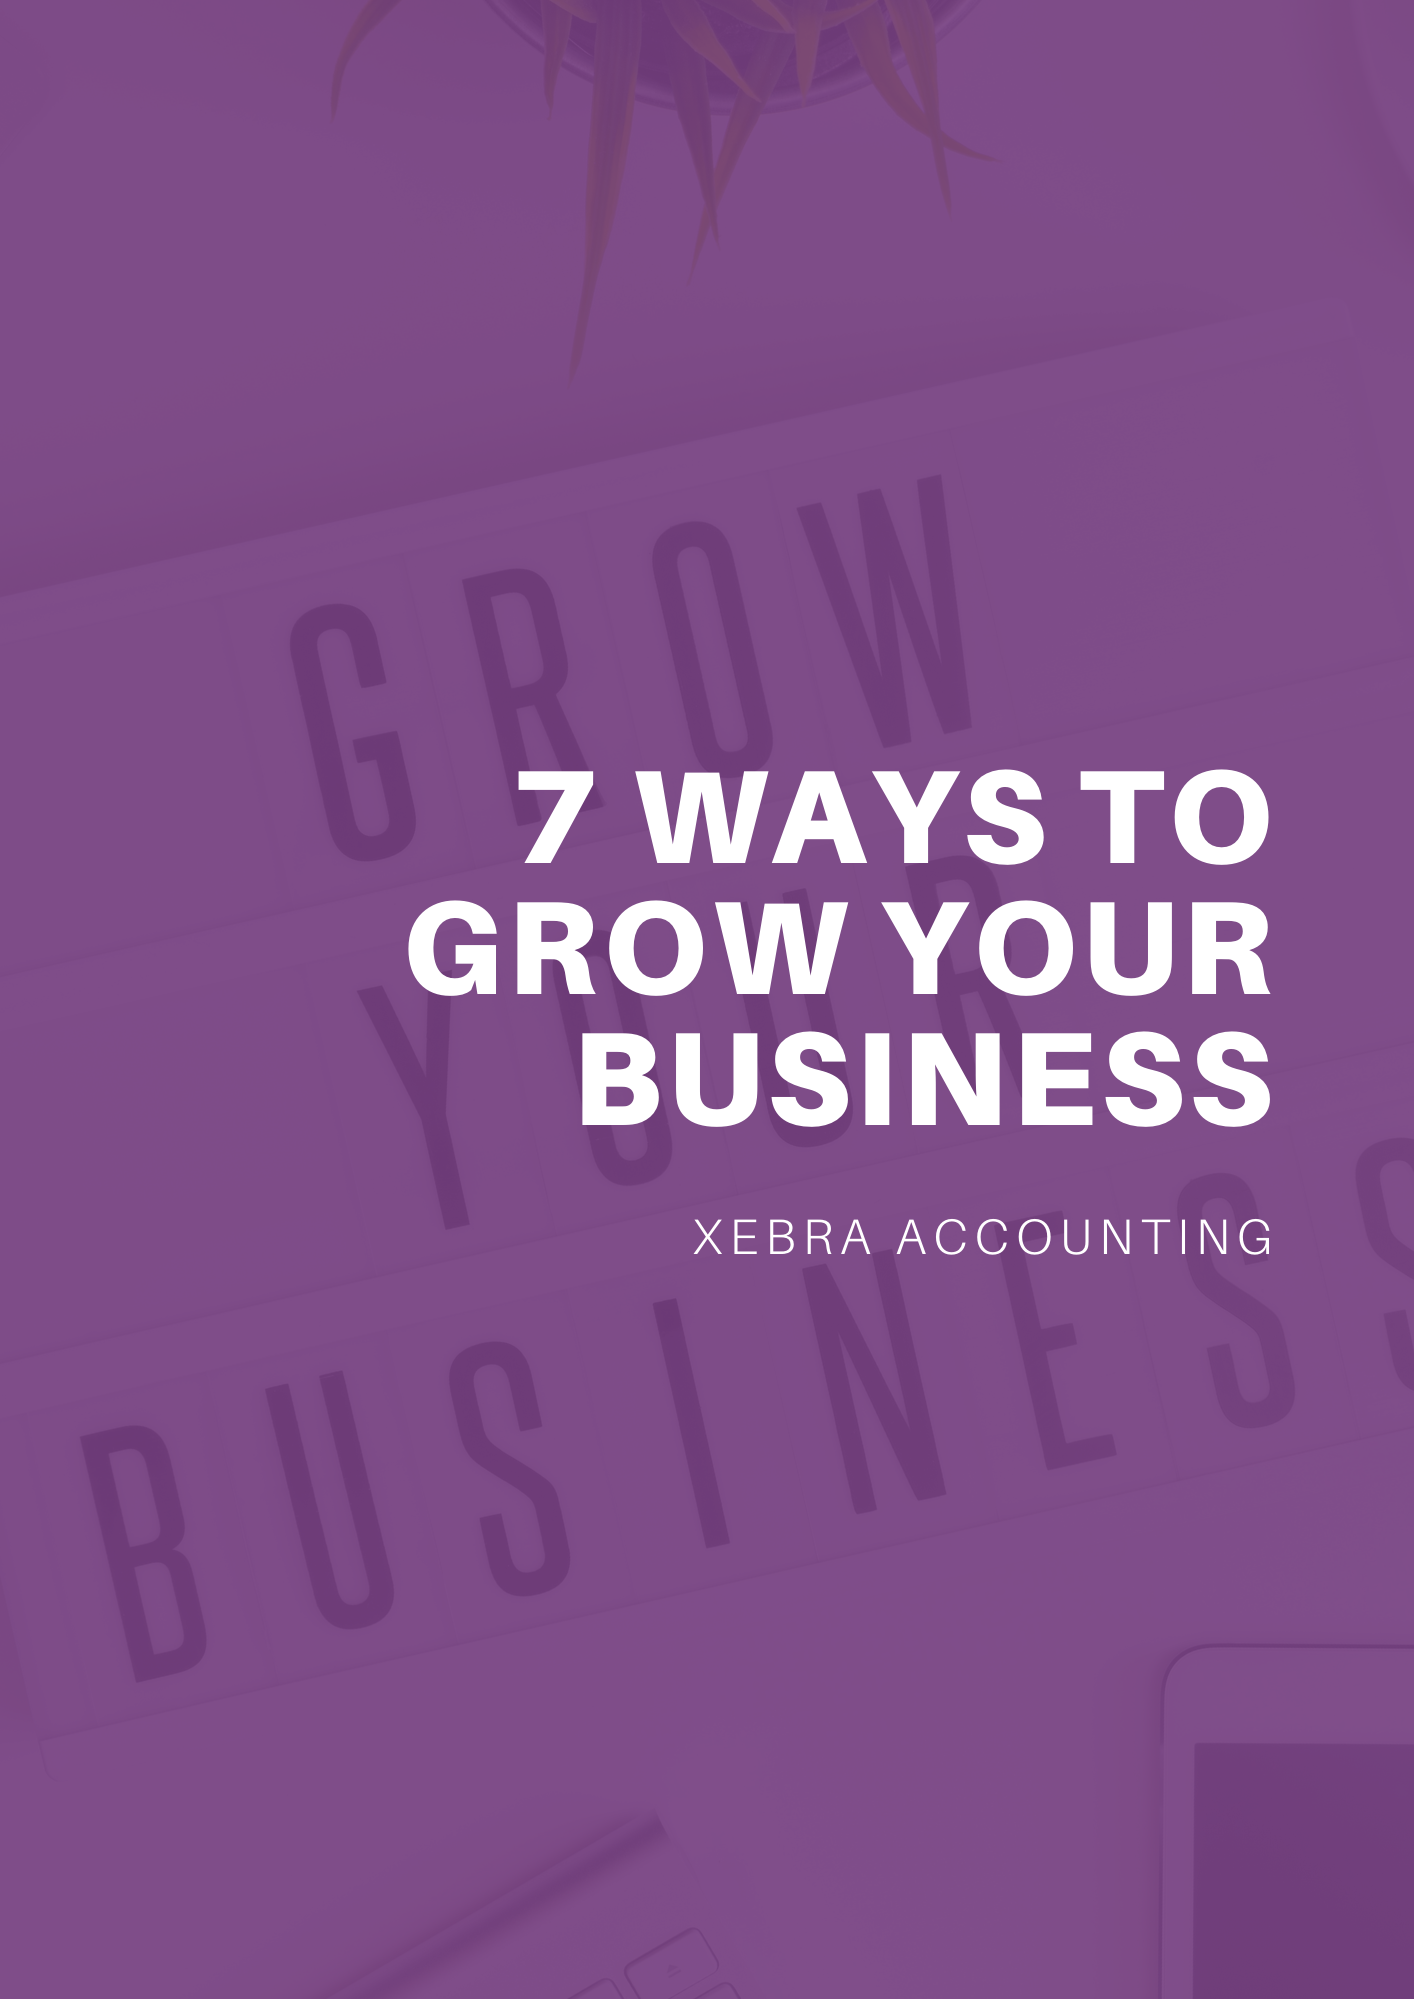 7 ways to grow your business